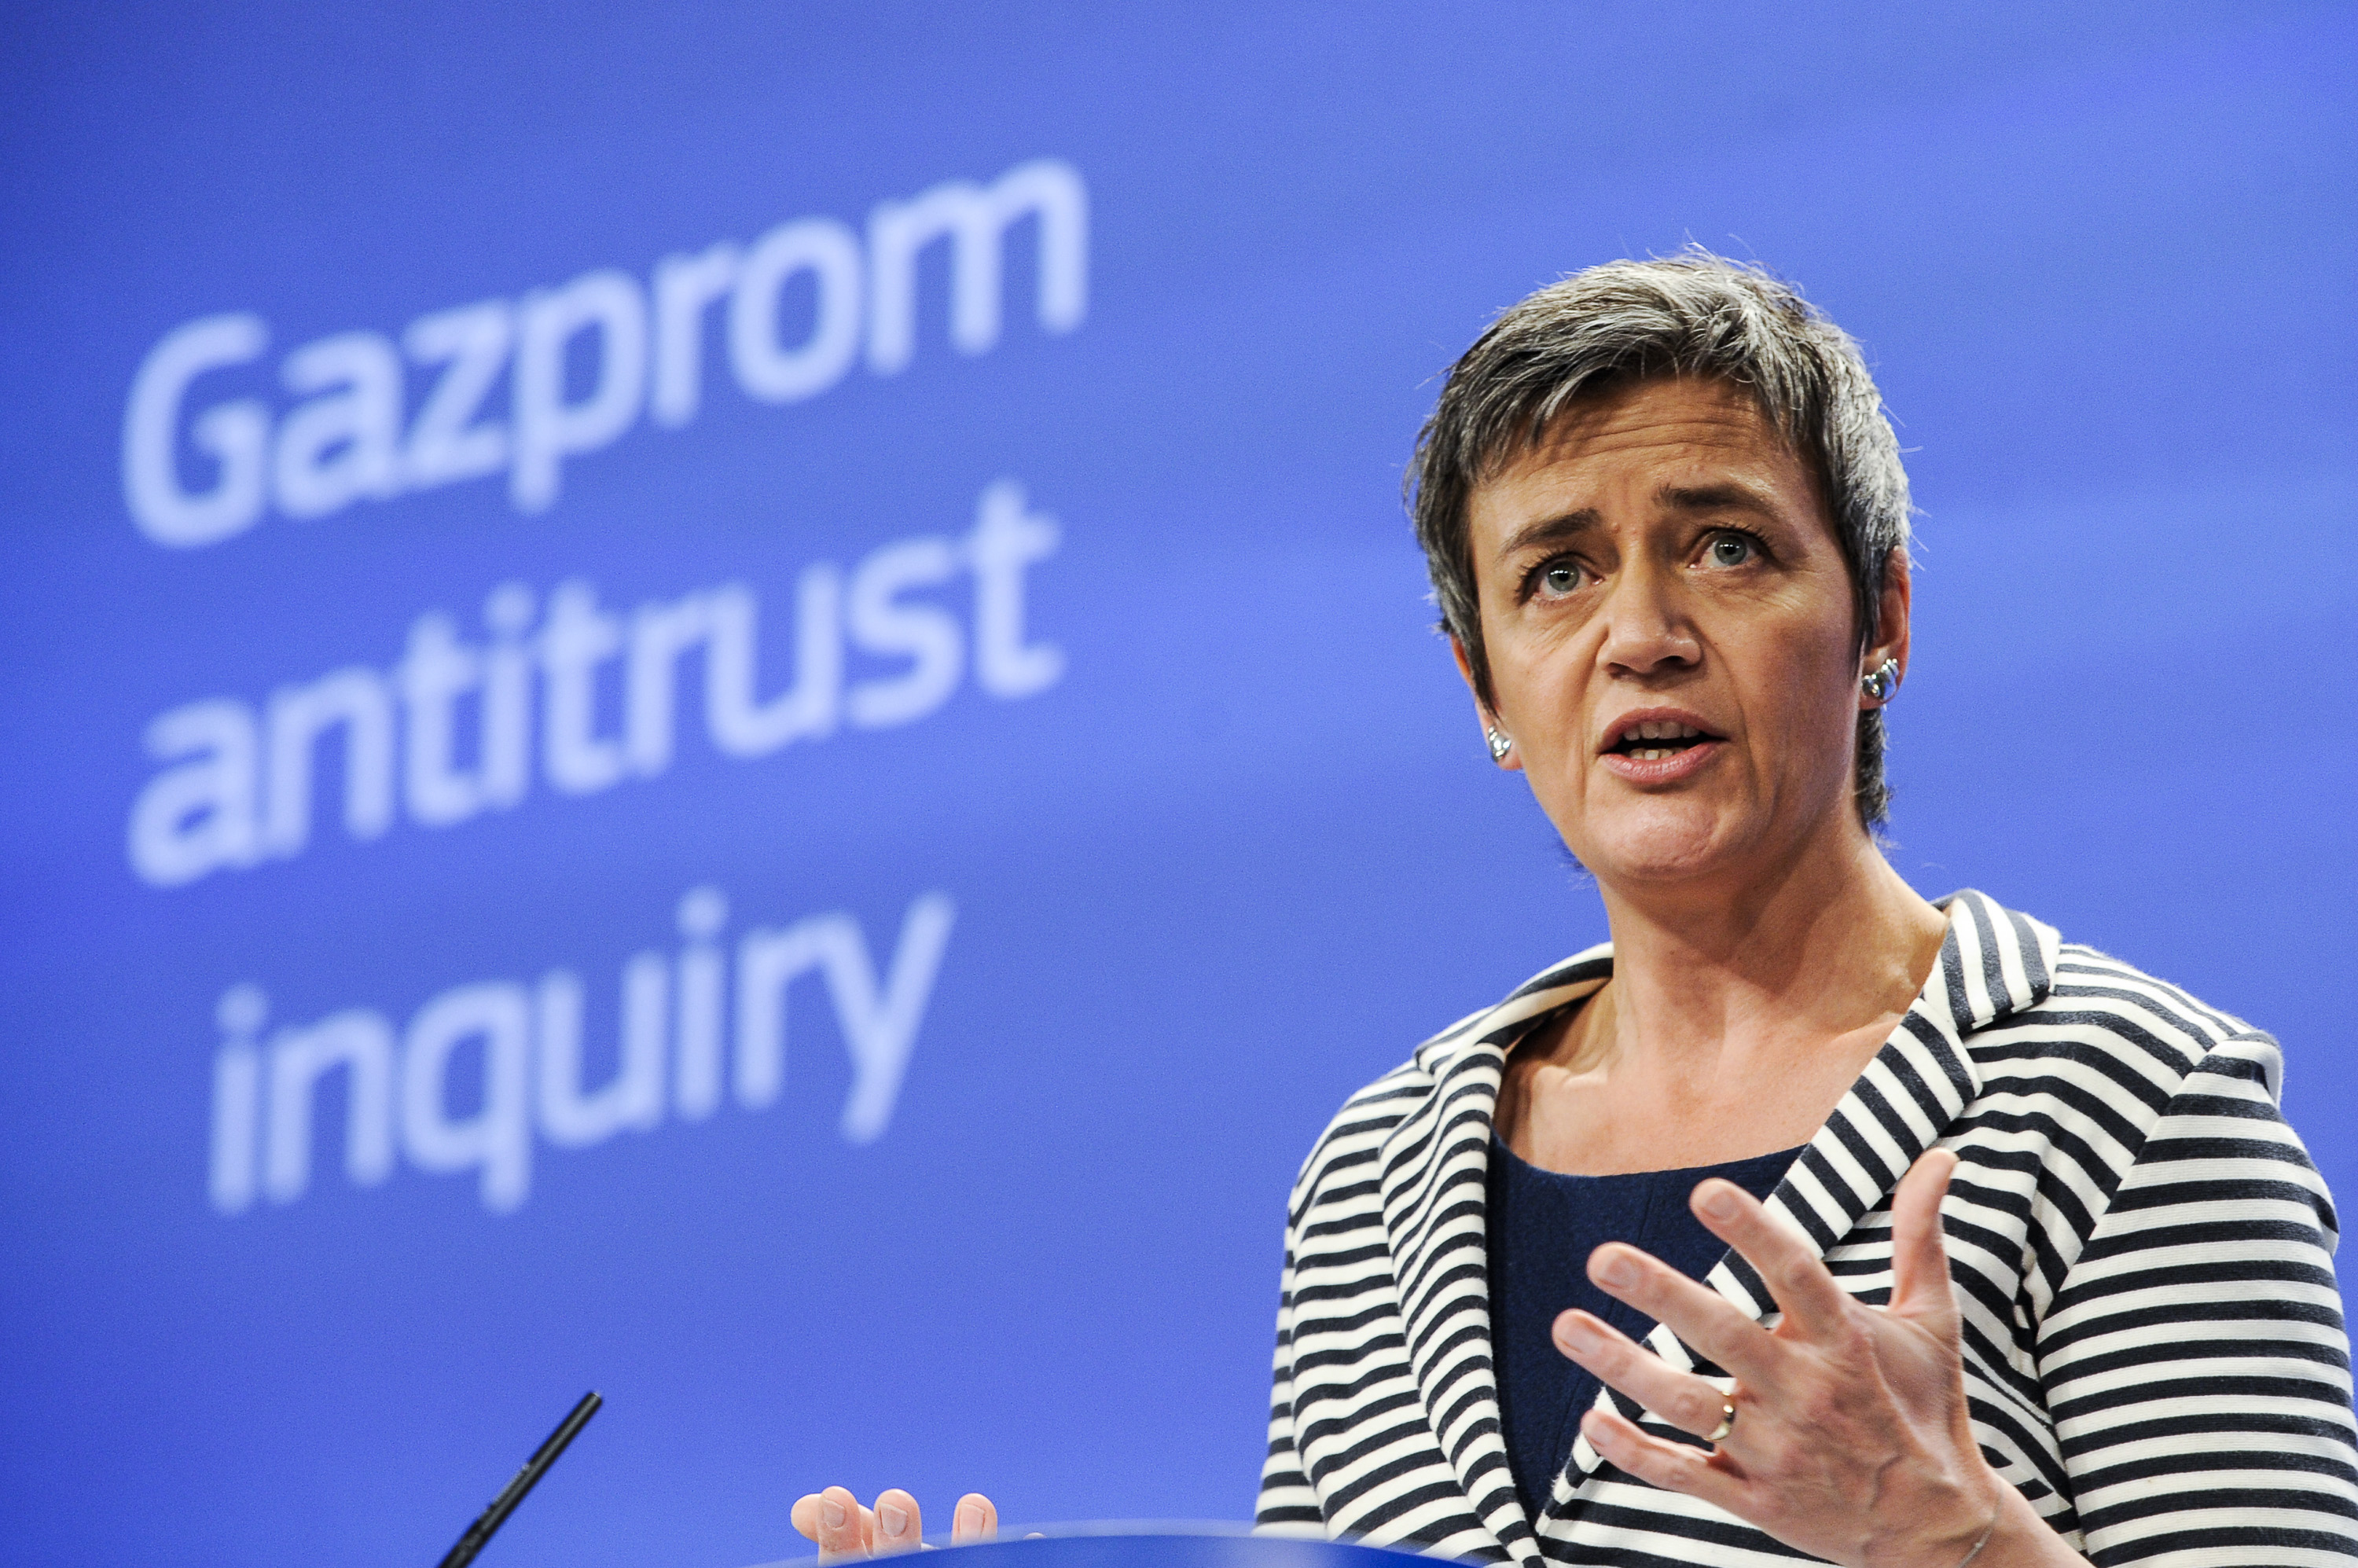 Margrethe Vestager, EU commissioner for Competition announce the Statement of Objection against Gazprom activities in 8 countries during the press conference at European Commission headquarters in Brussels, April 22, 2015.